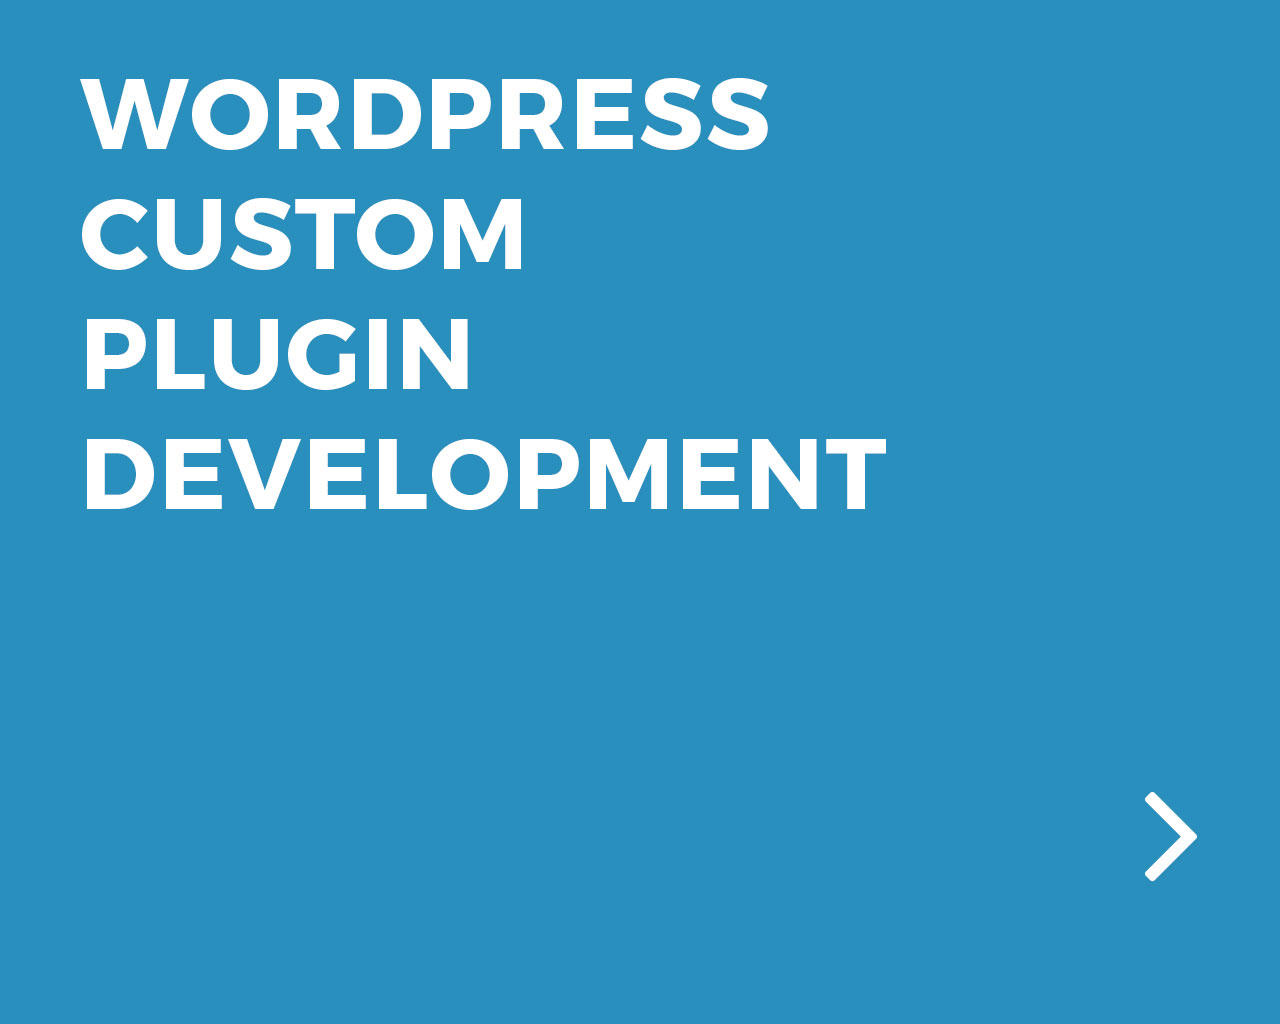 Wordpress Custom Plugin Development by bestwebsoft - 87413